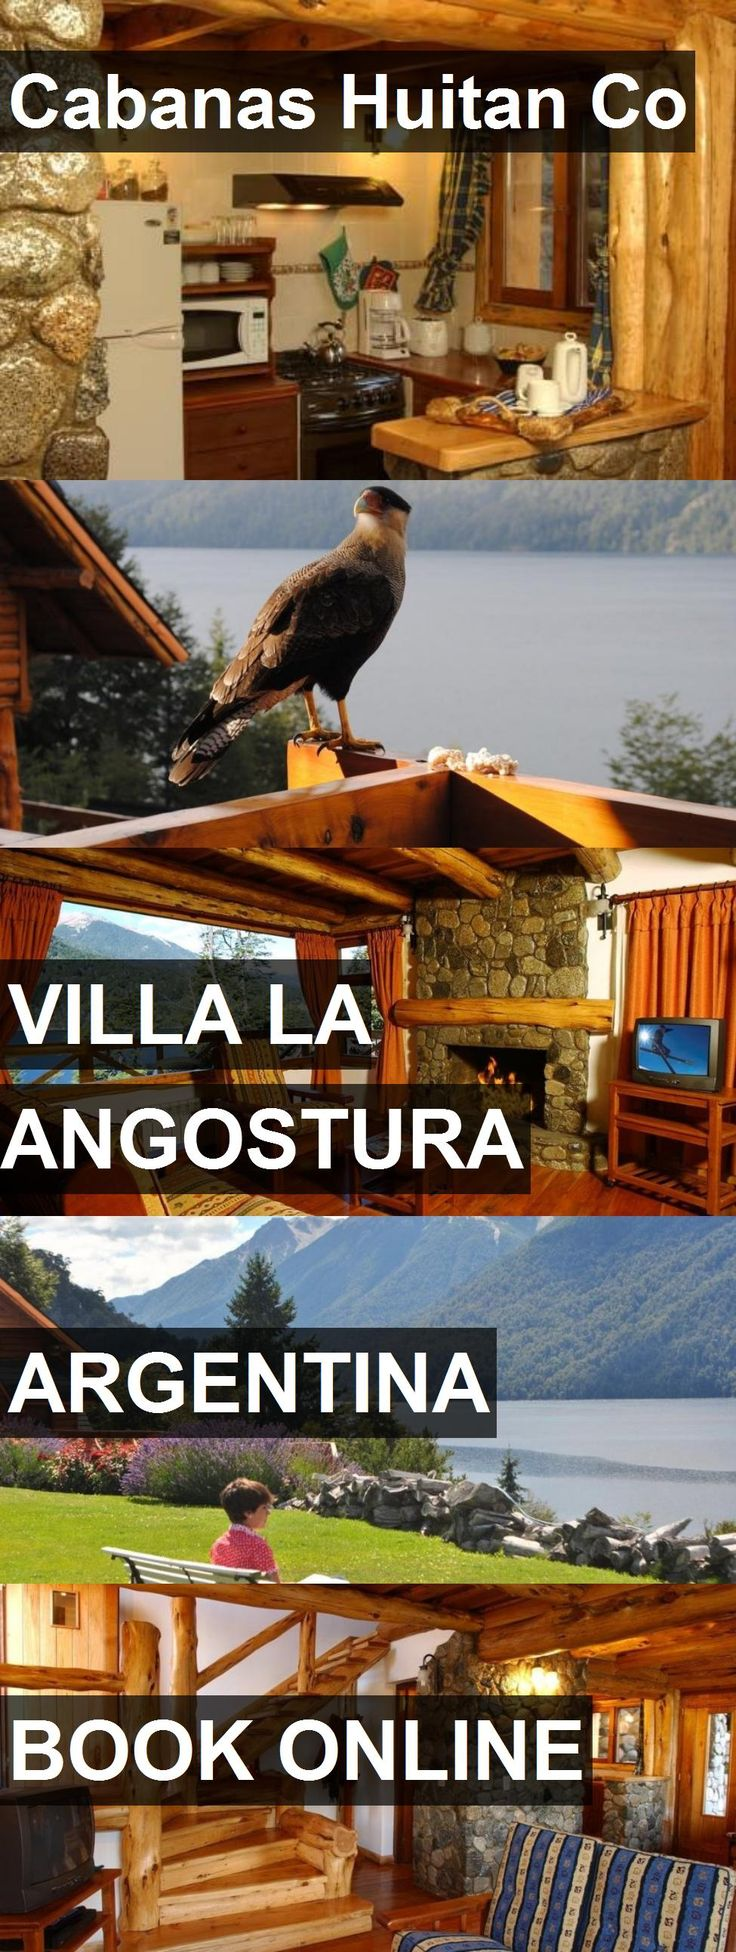 Hotel Cabanas Huitan Co in Villa la Angostura, Argentina. For more information, photos, reviews and best prices please follow the link. #Argentina #VillalaAngostura #CabanasHuitanCo #hotel #travel #vacation